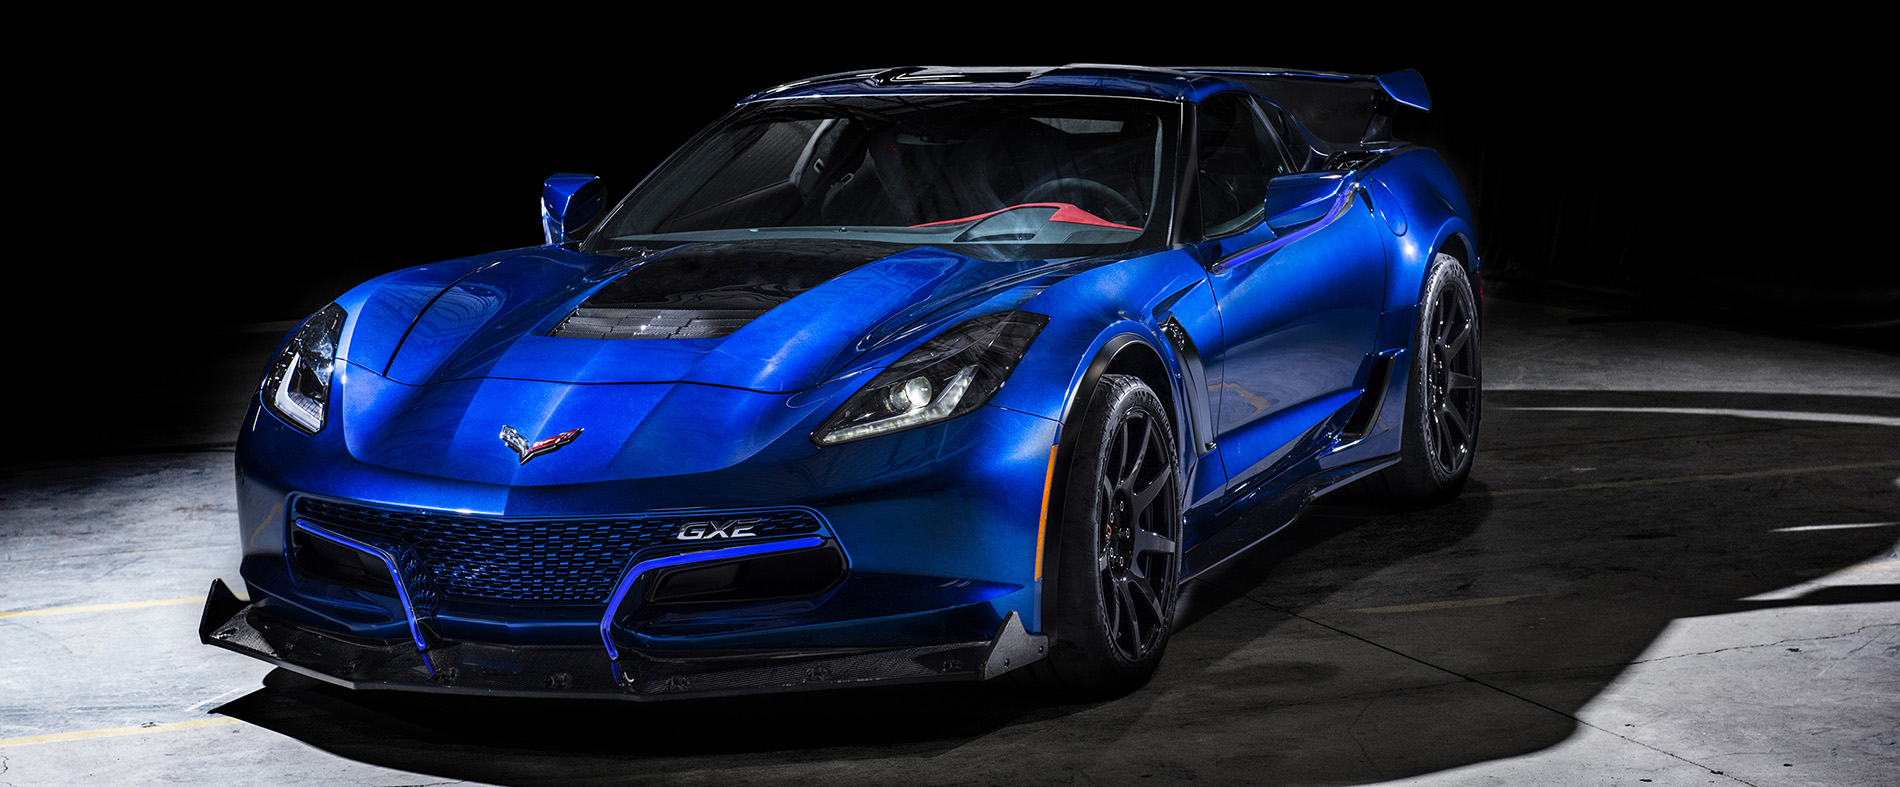 220 Mph Genovation Gxe All Electric Supercar Makes World Debut At Ces